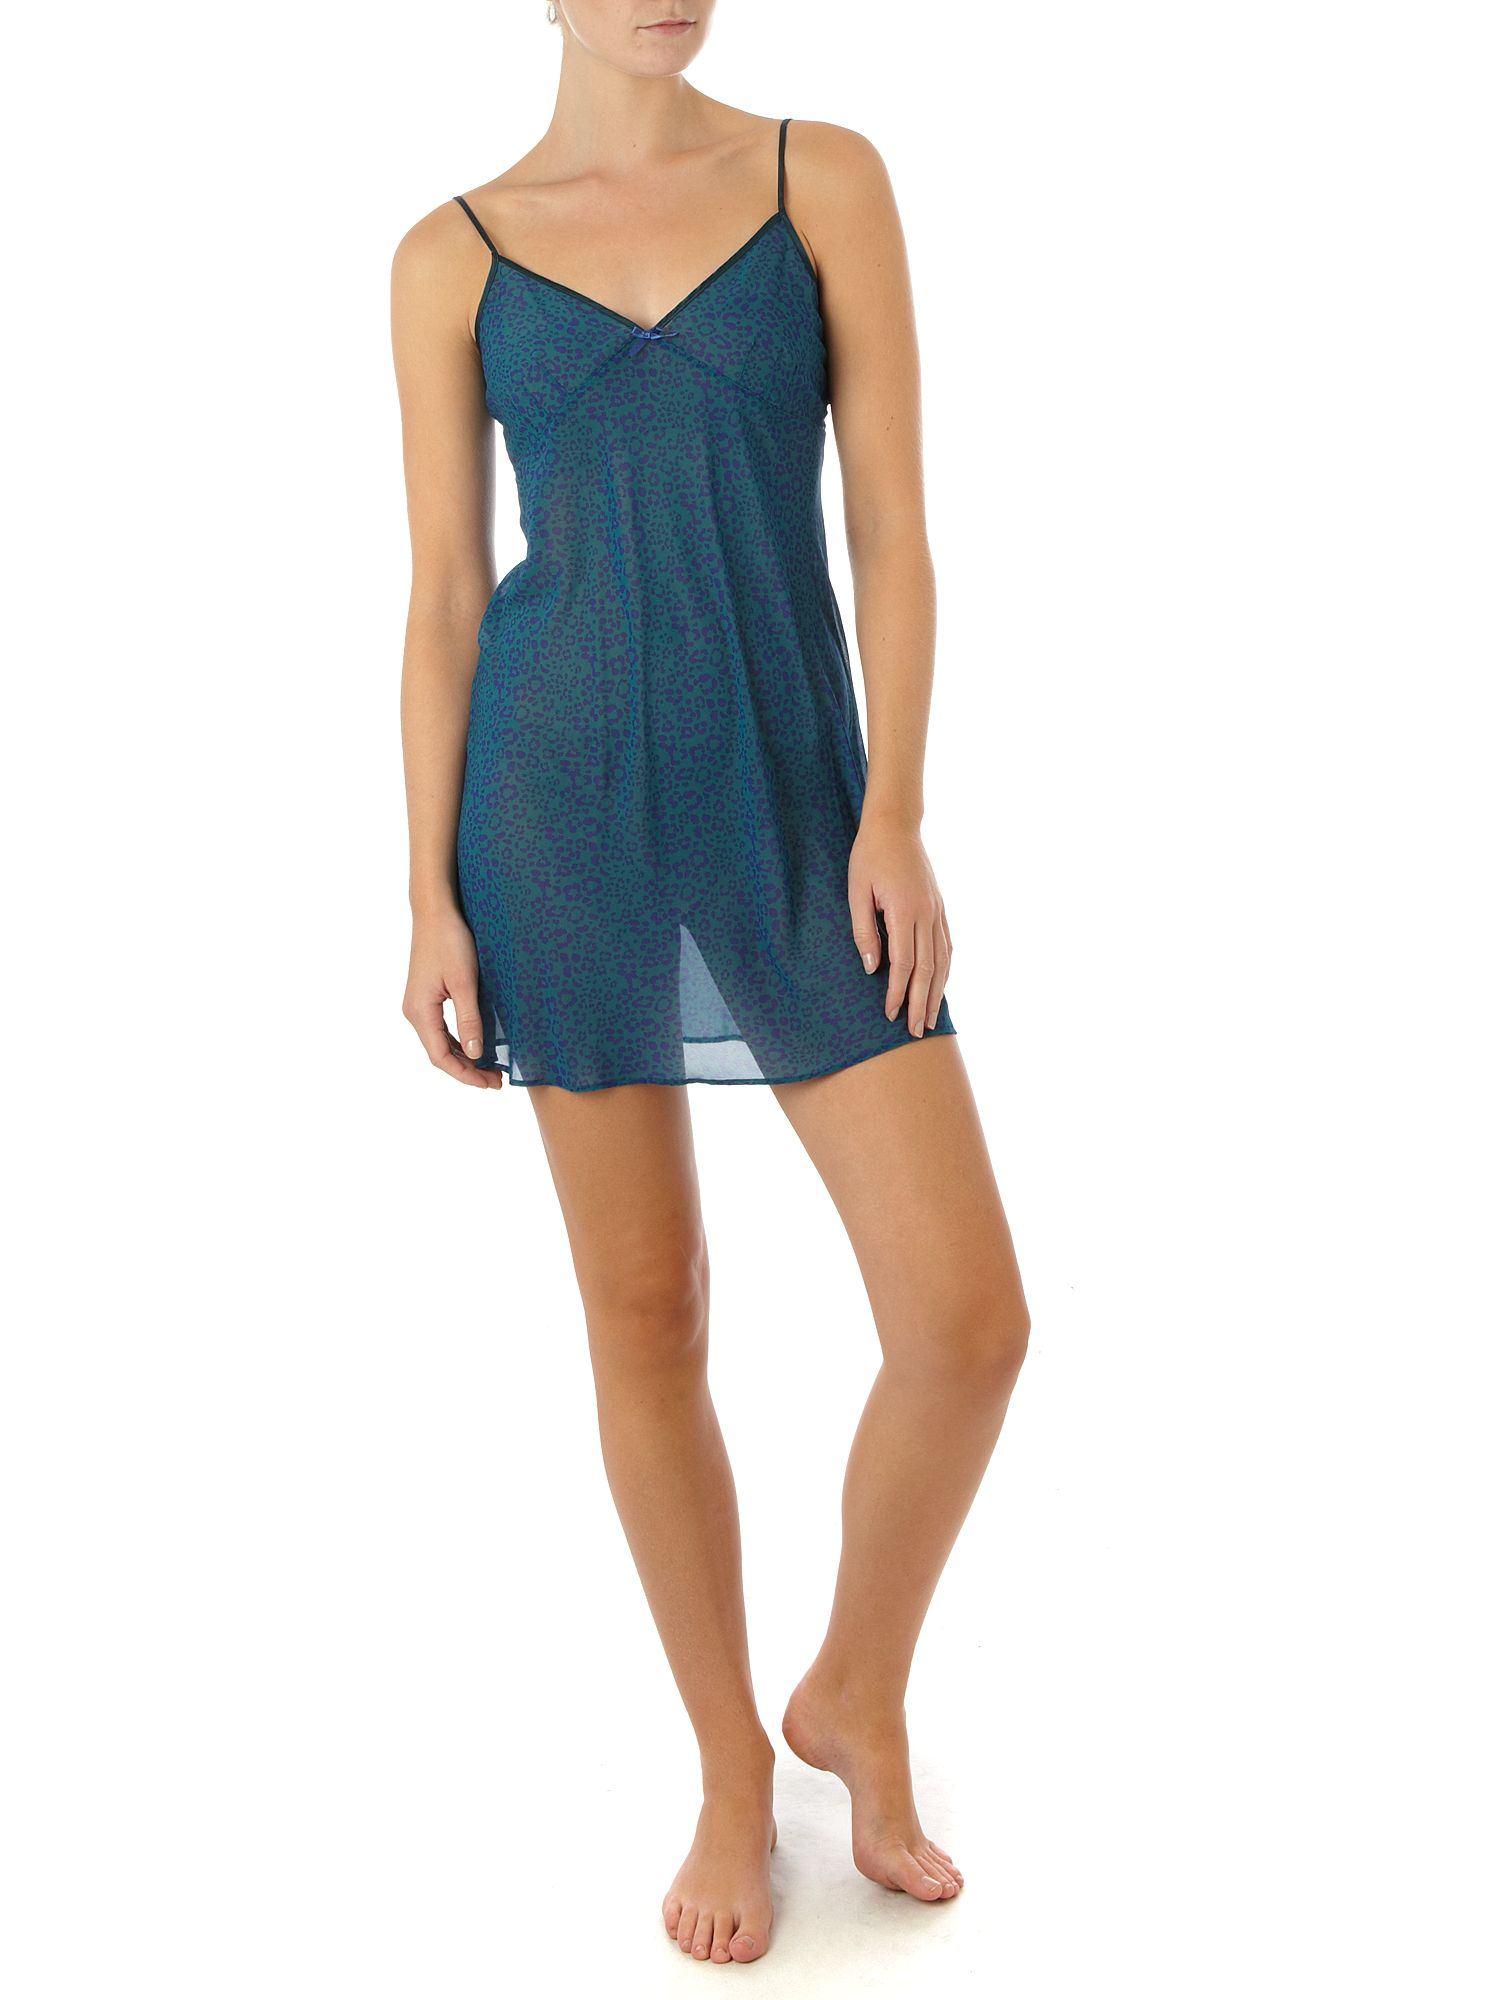 Elle Macpherson Intimates Summer Meadows Chemise Teal product image